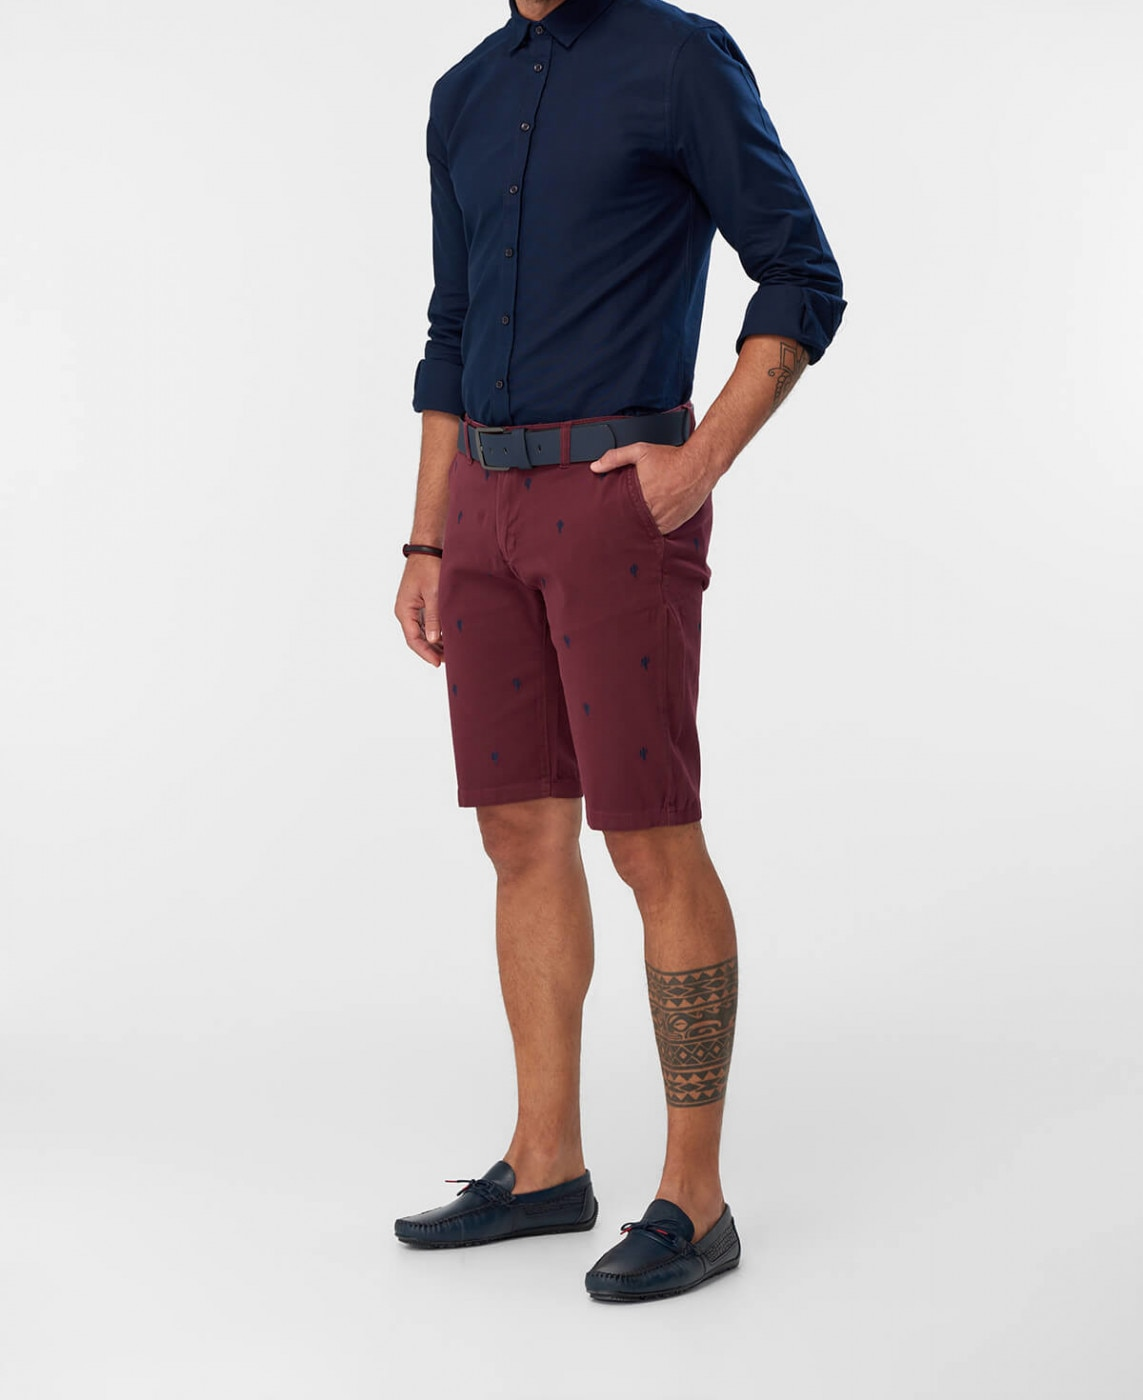 Men's shorts Trendyol Embroidered